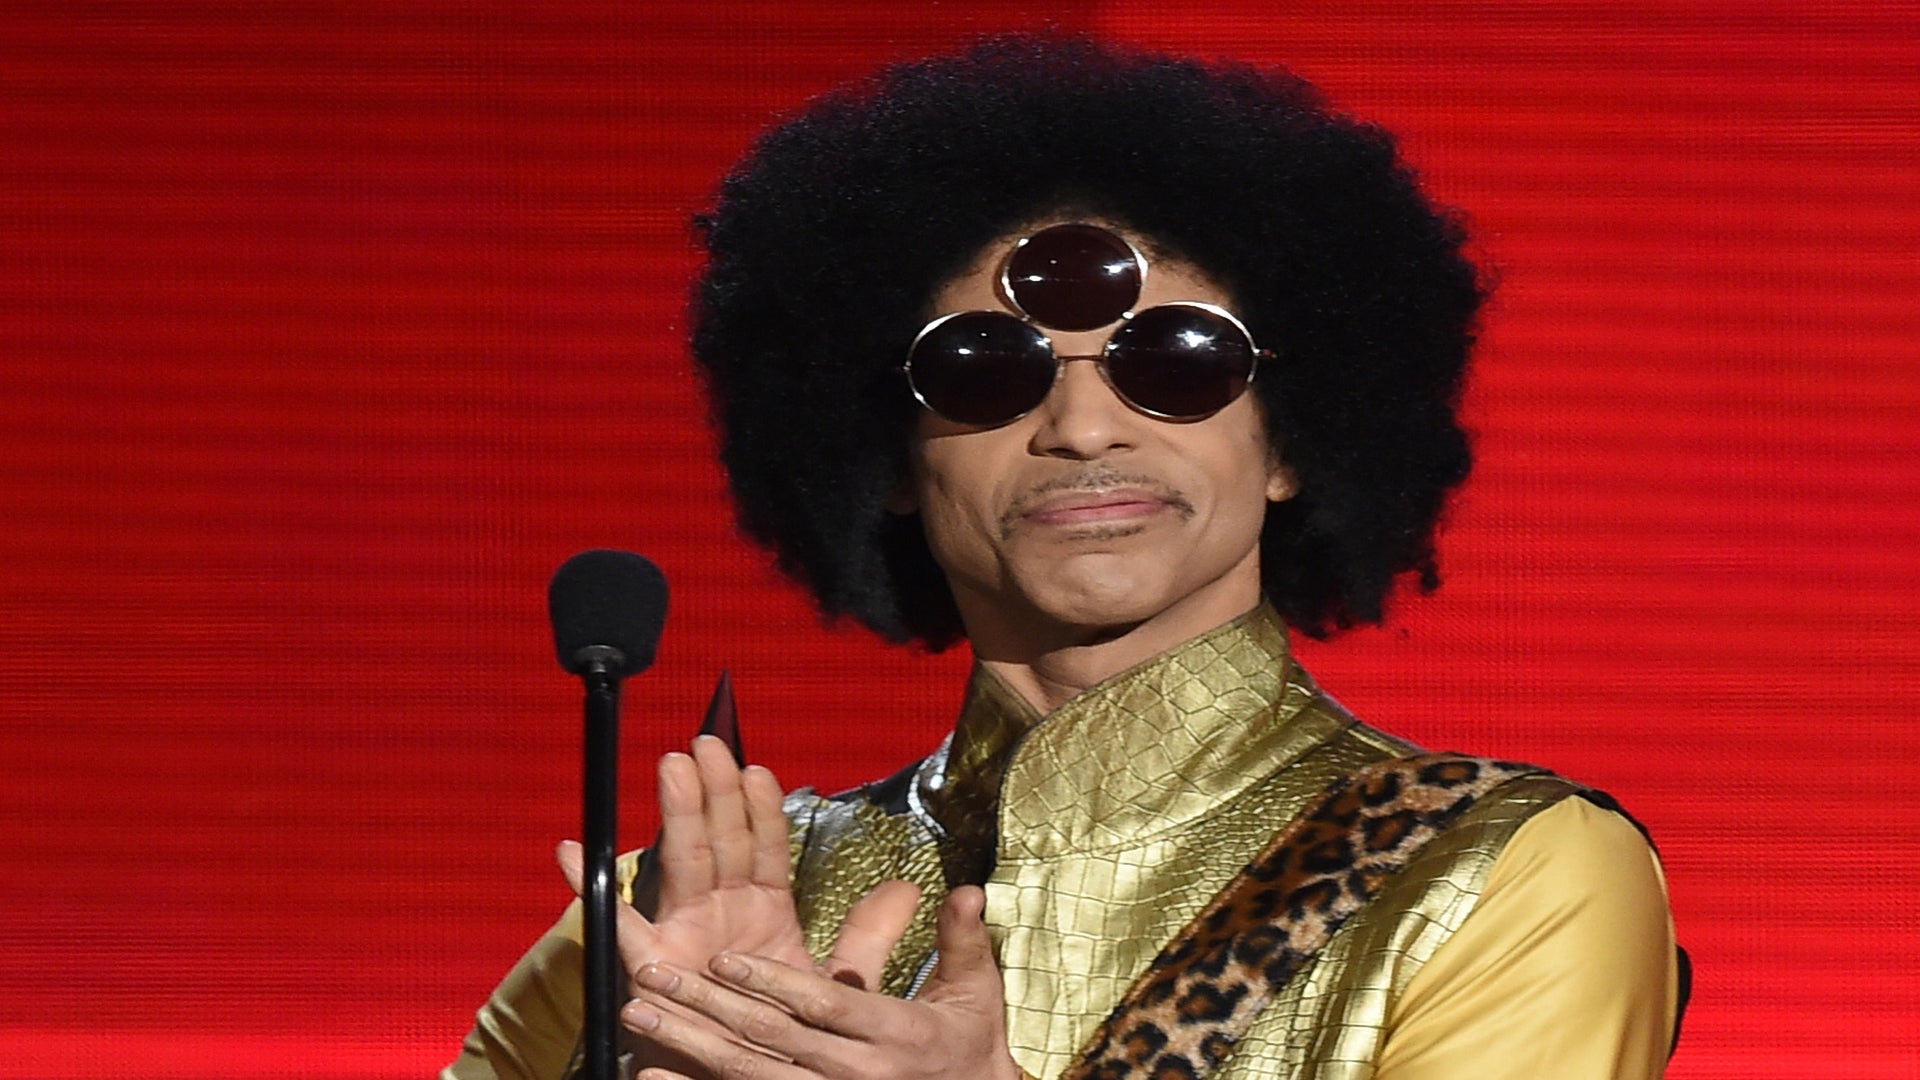 Prince To Receive All-Star Grammys Tribute Featuring Alicia Keys, John Legend & Usher